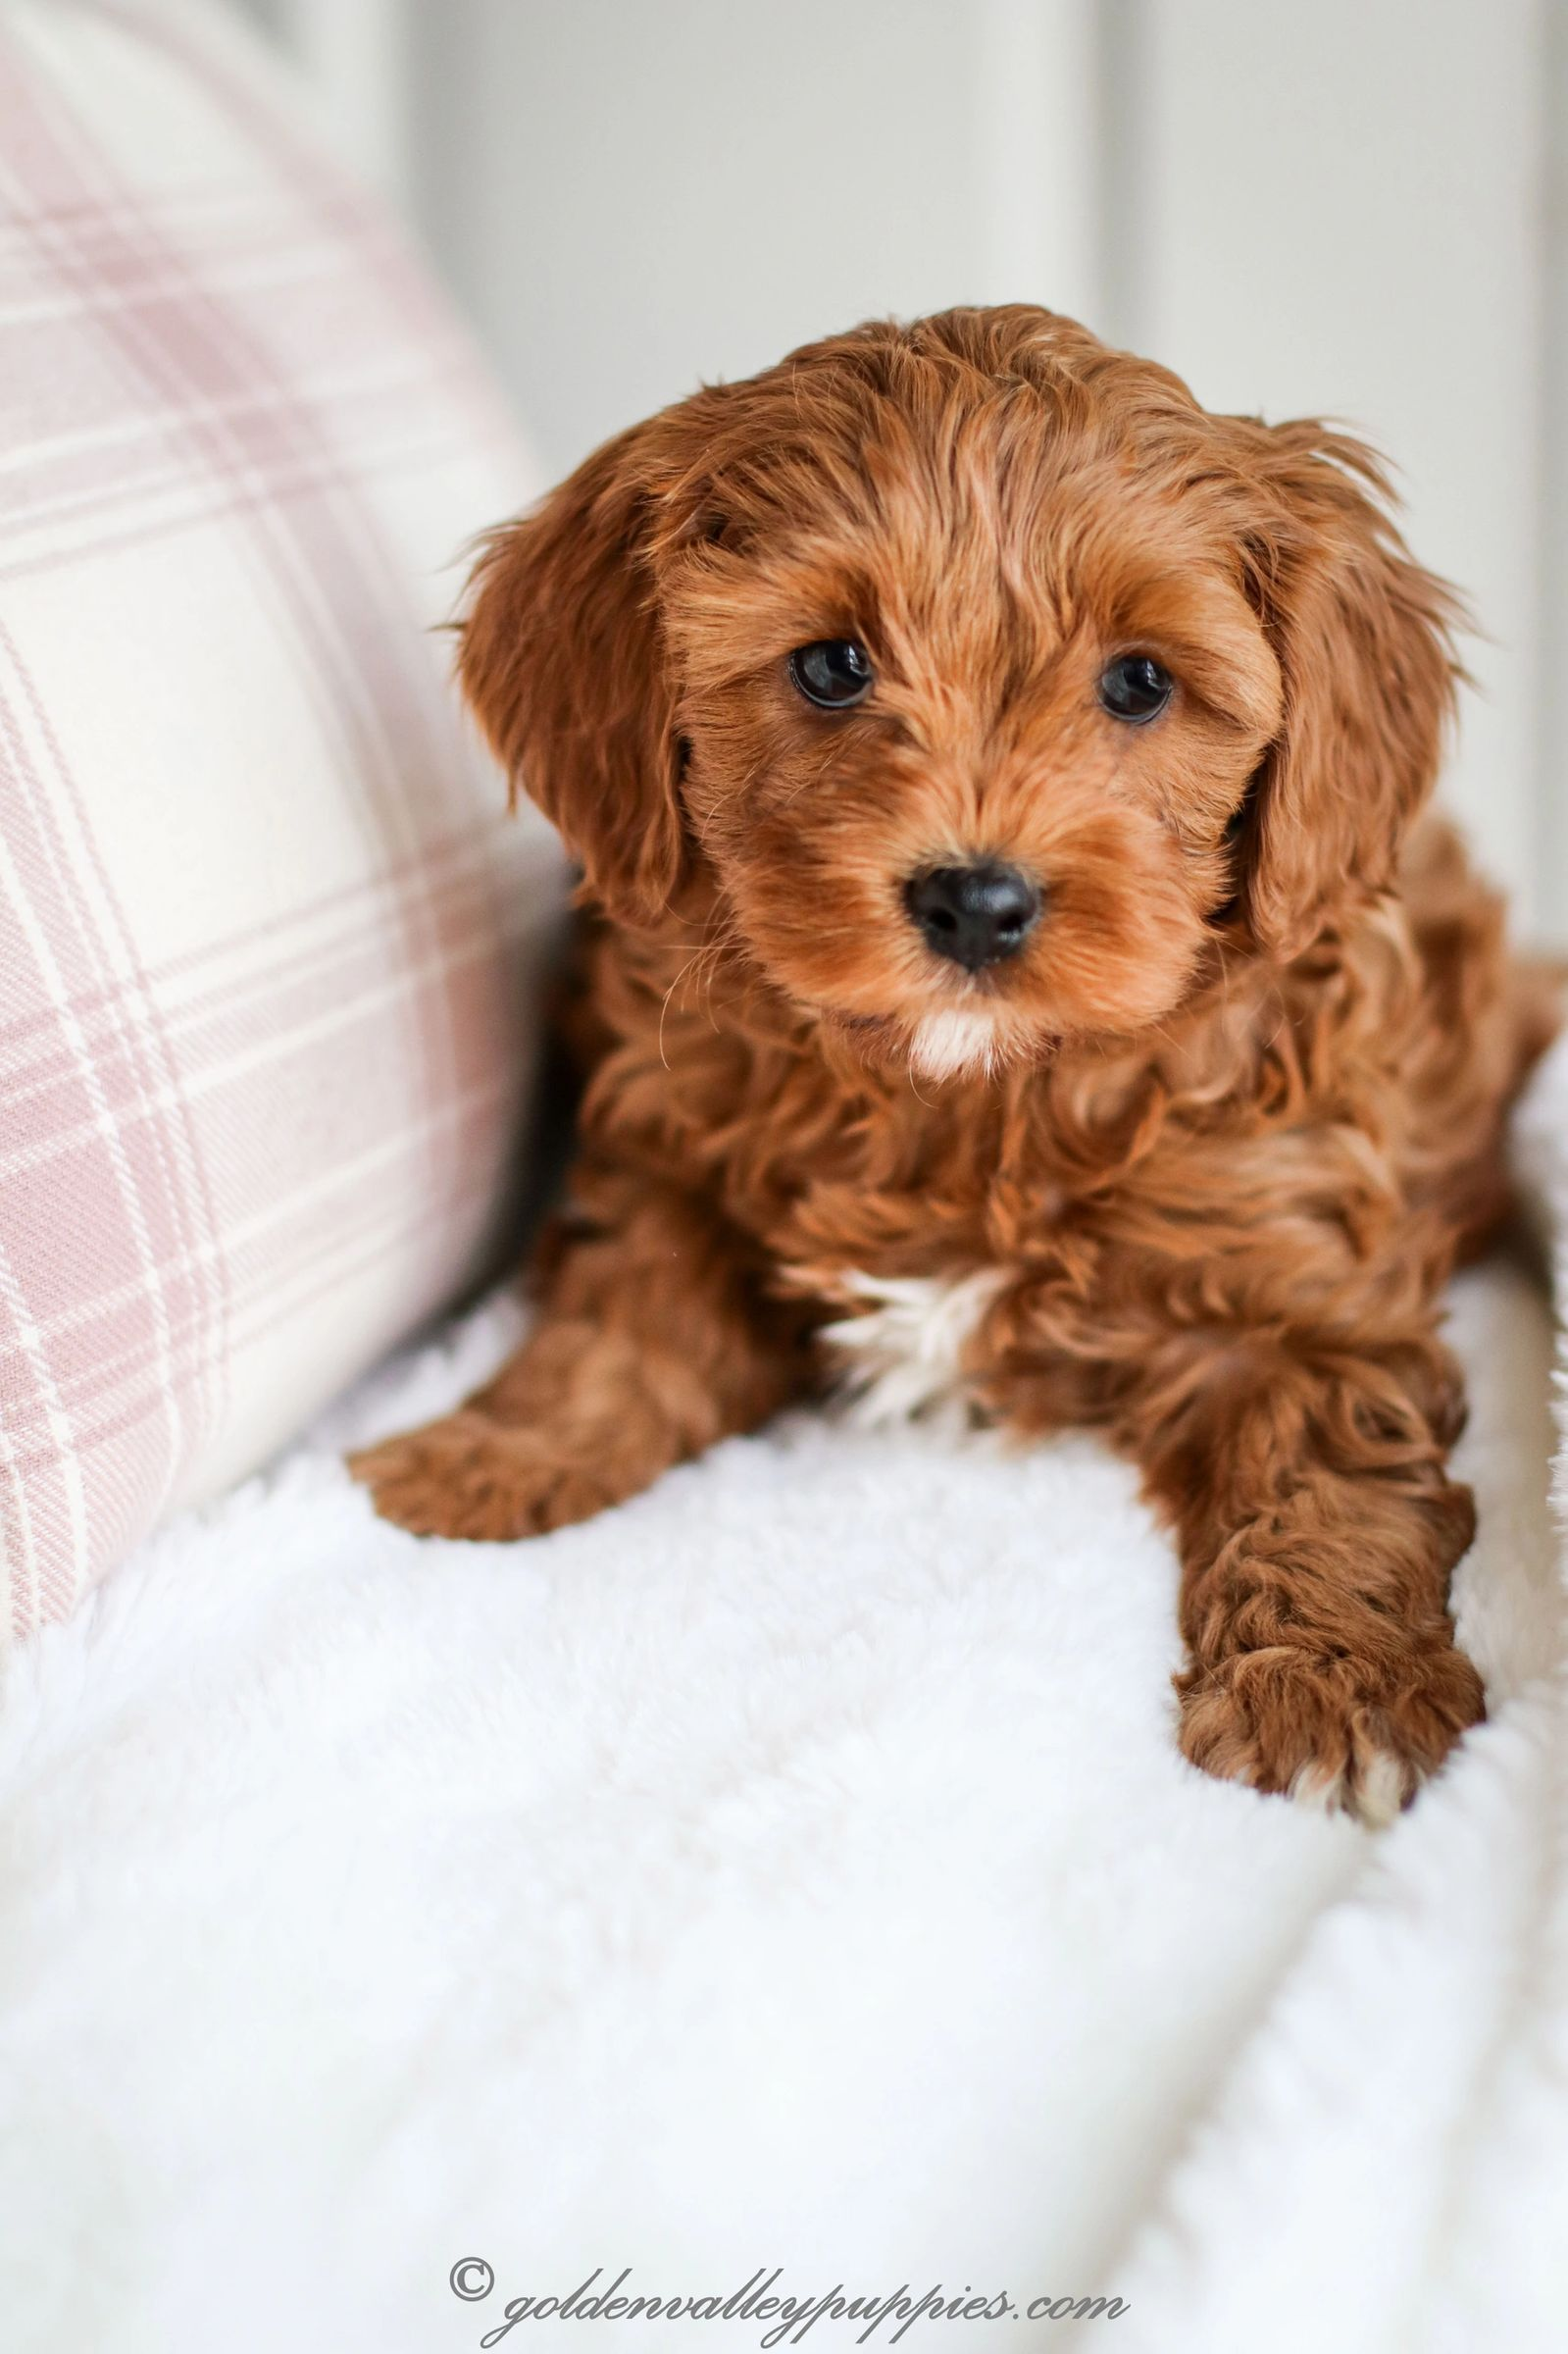 Our Puppy Album Cavapoo Puppies for Sale Golden Valley